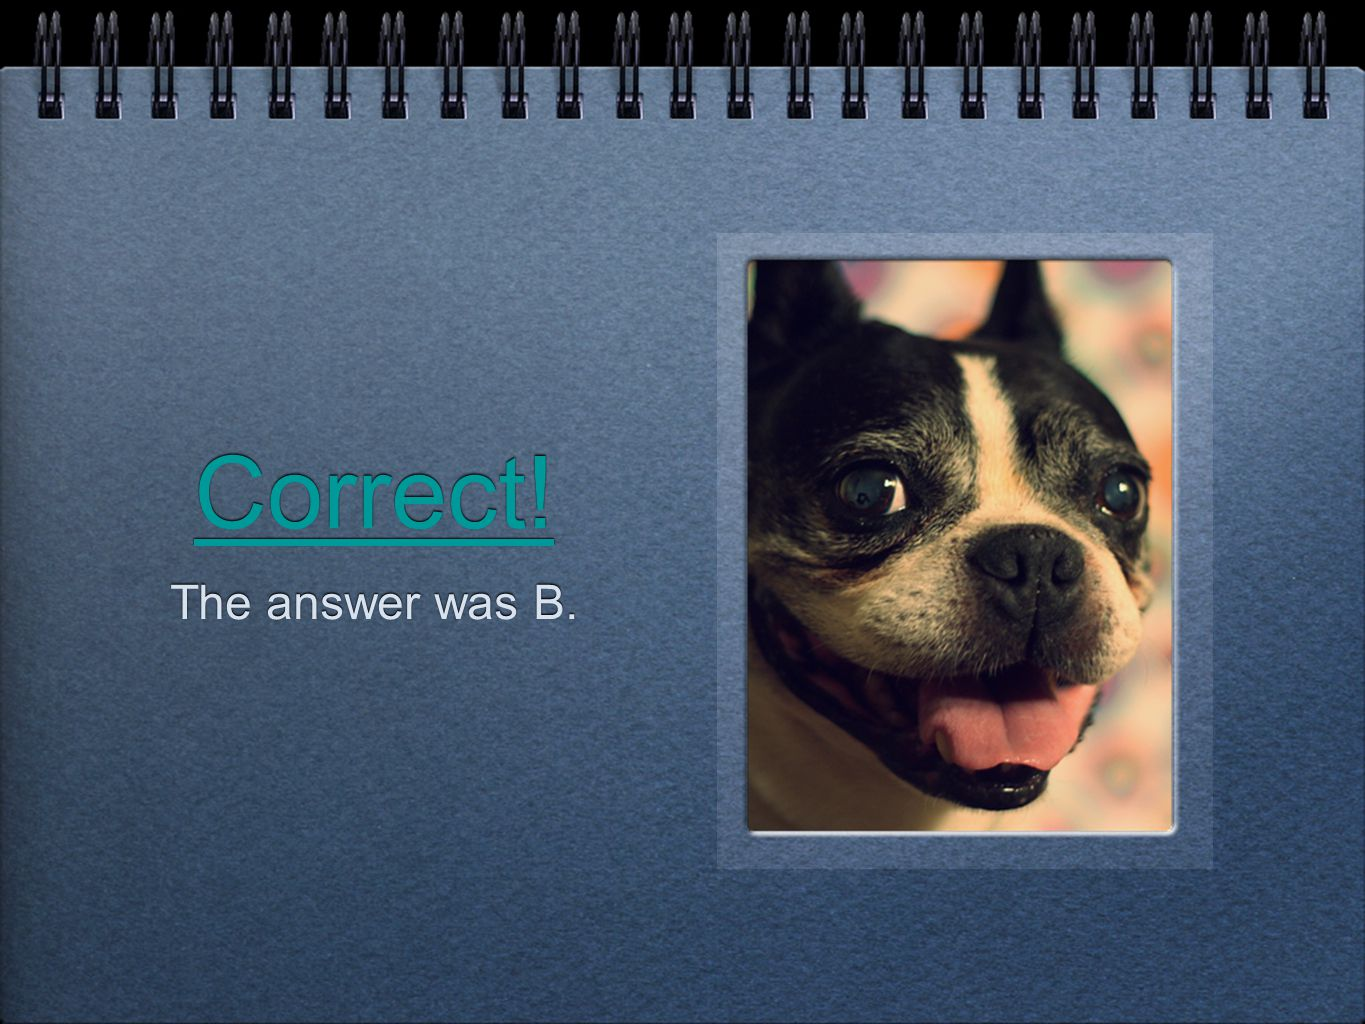 Correct! The answer was B.